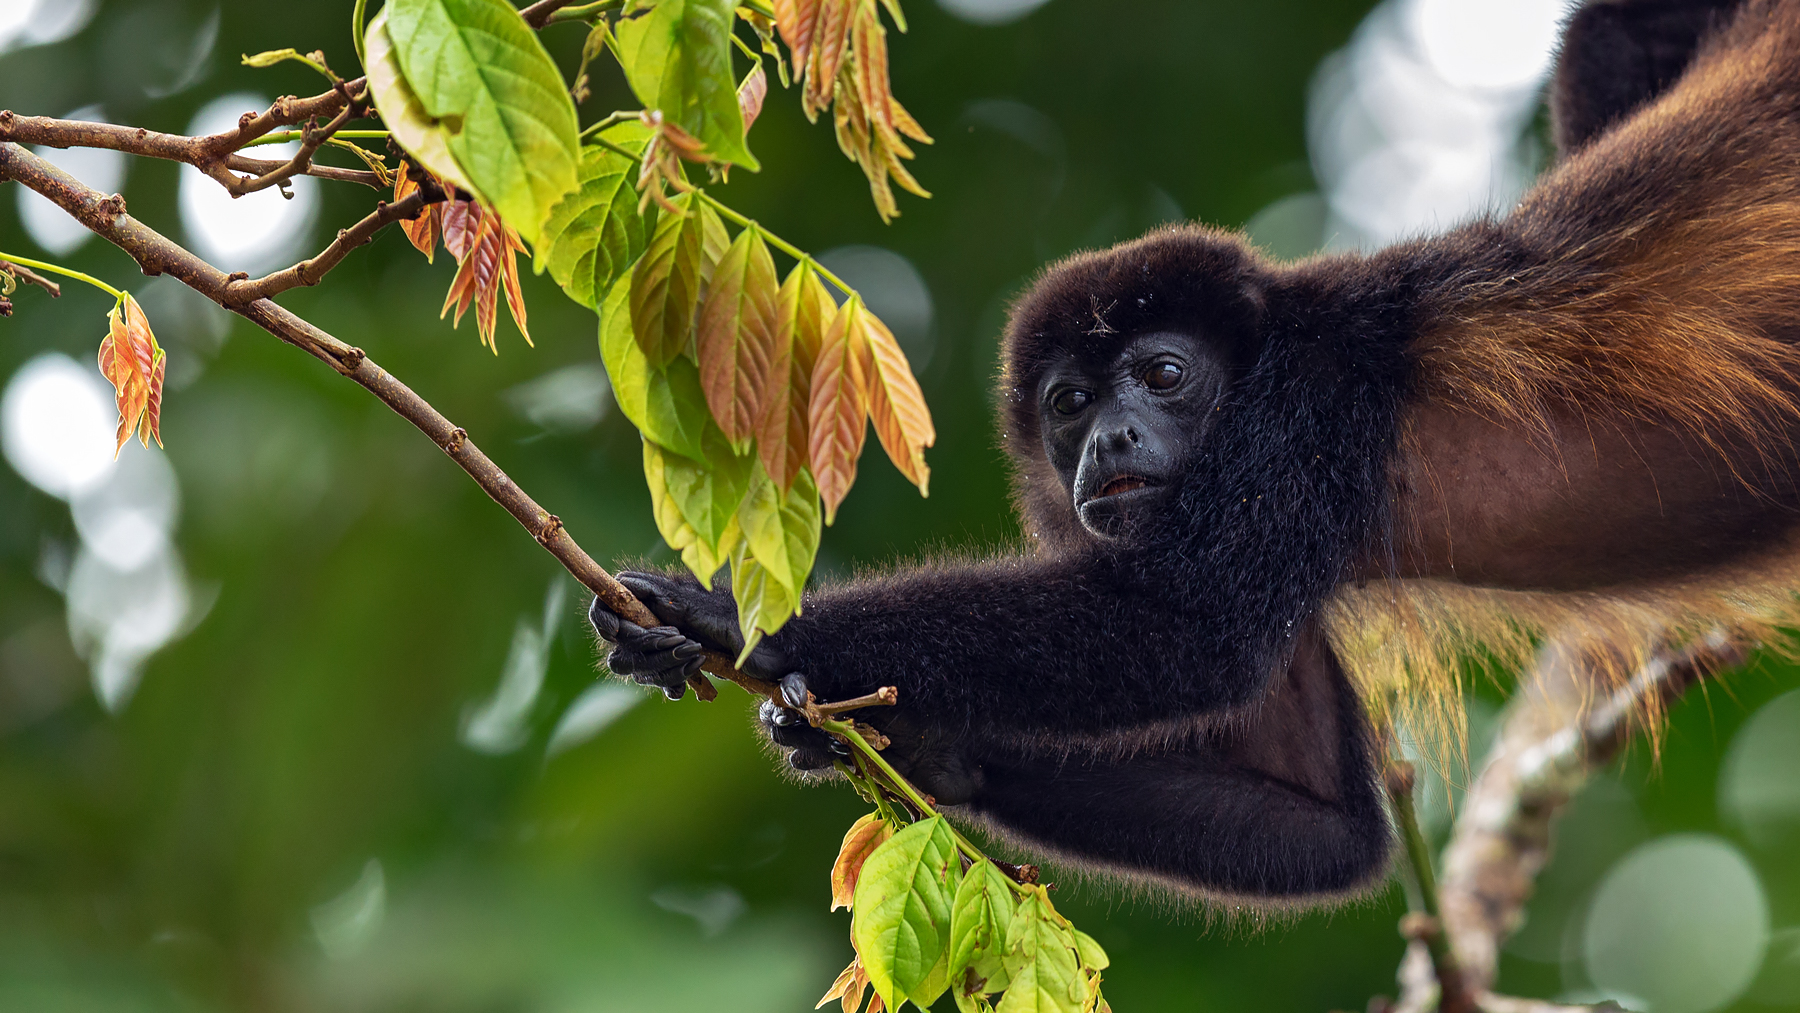 Mantled Howler Monkey @ Tortuguero National Park - Costa Rica